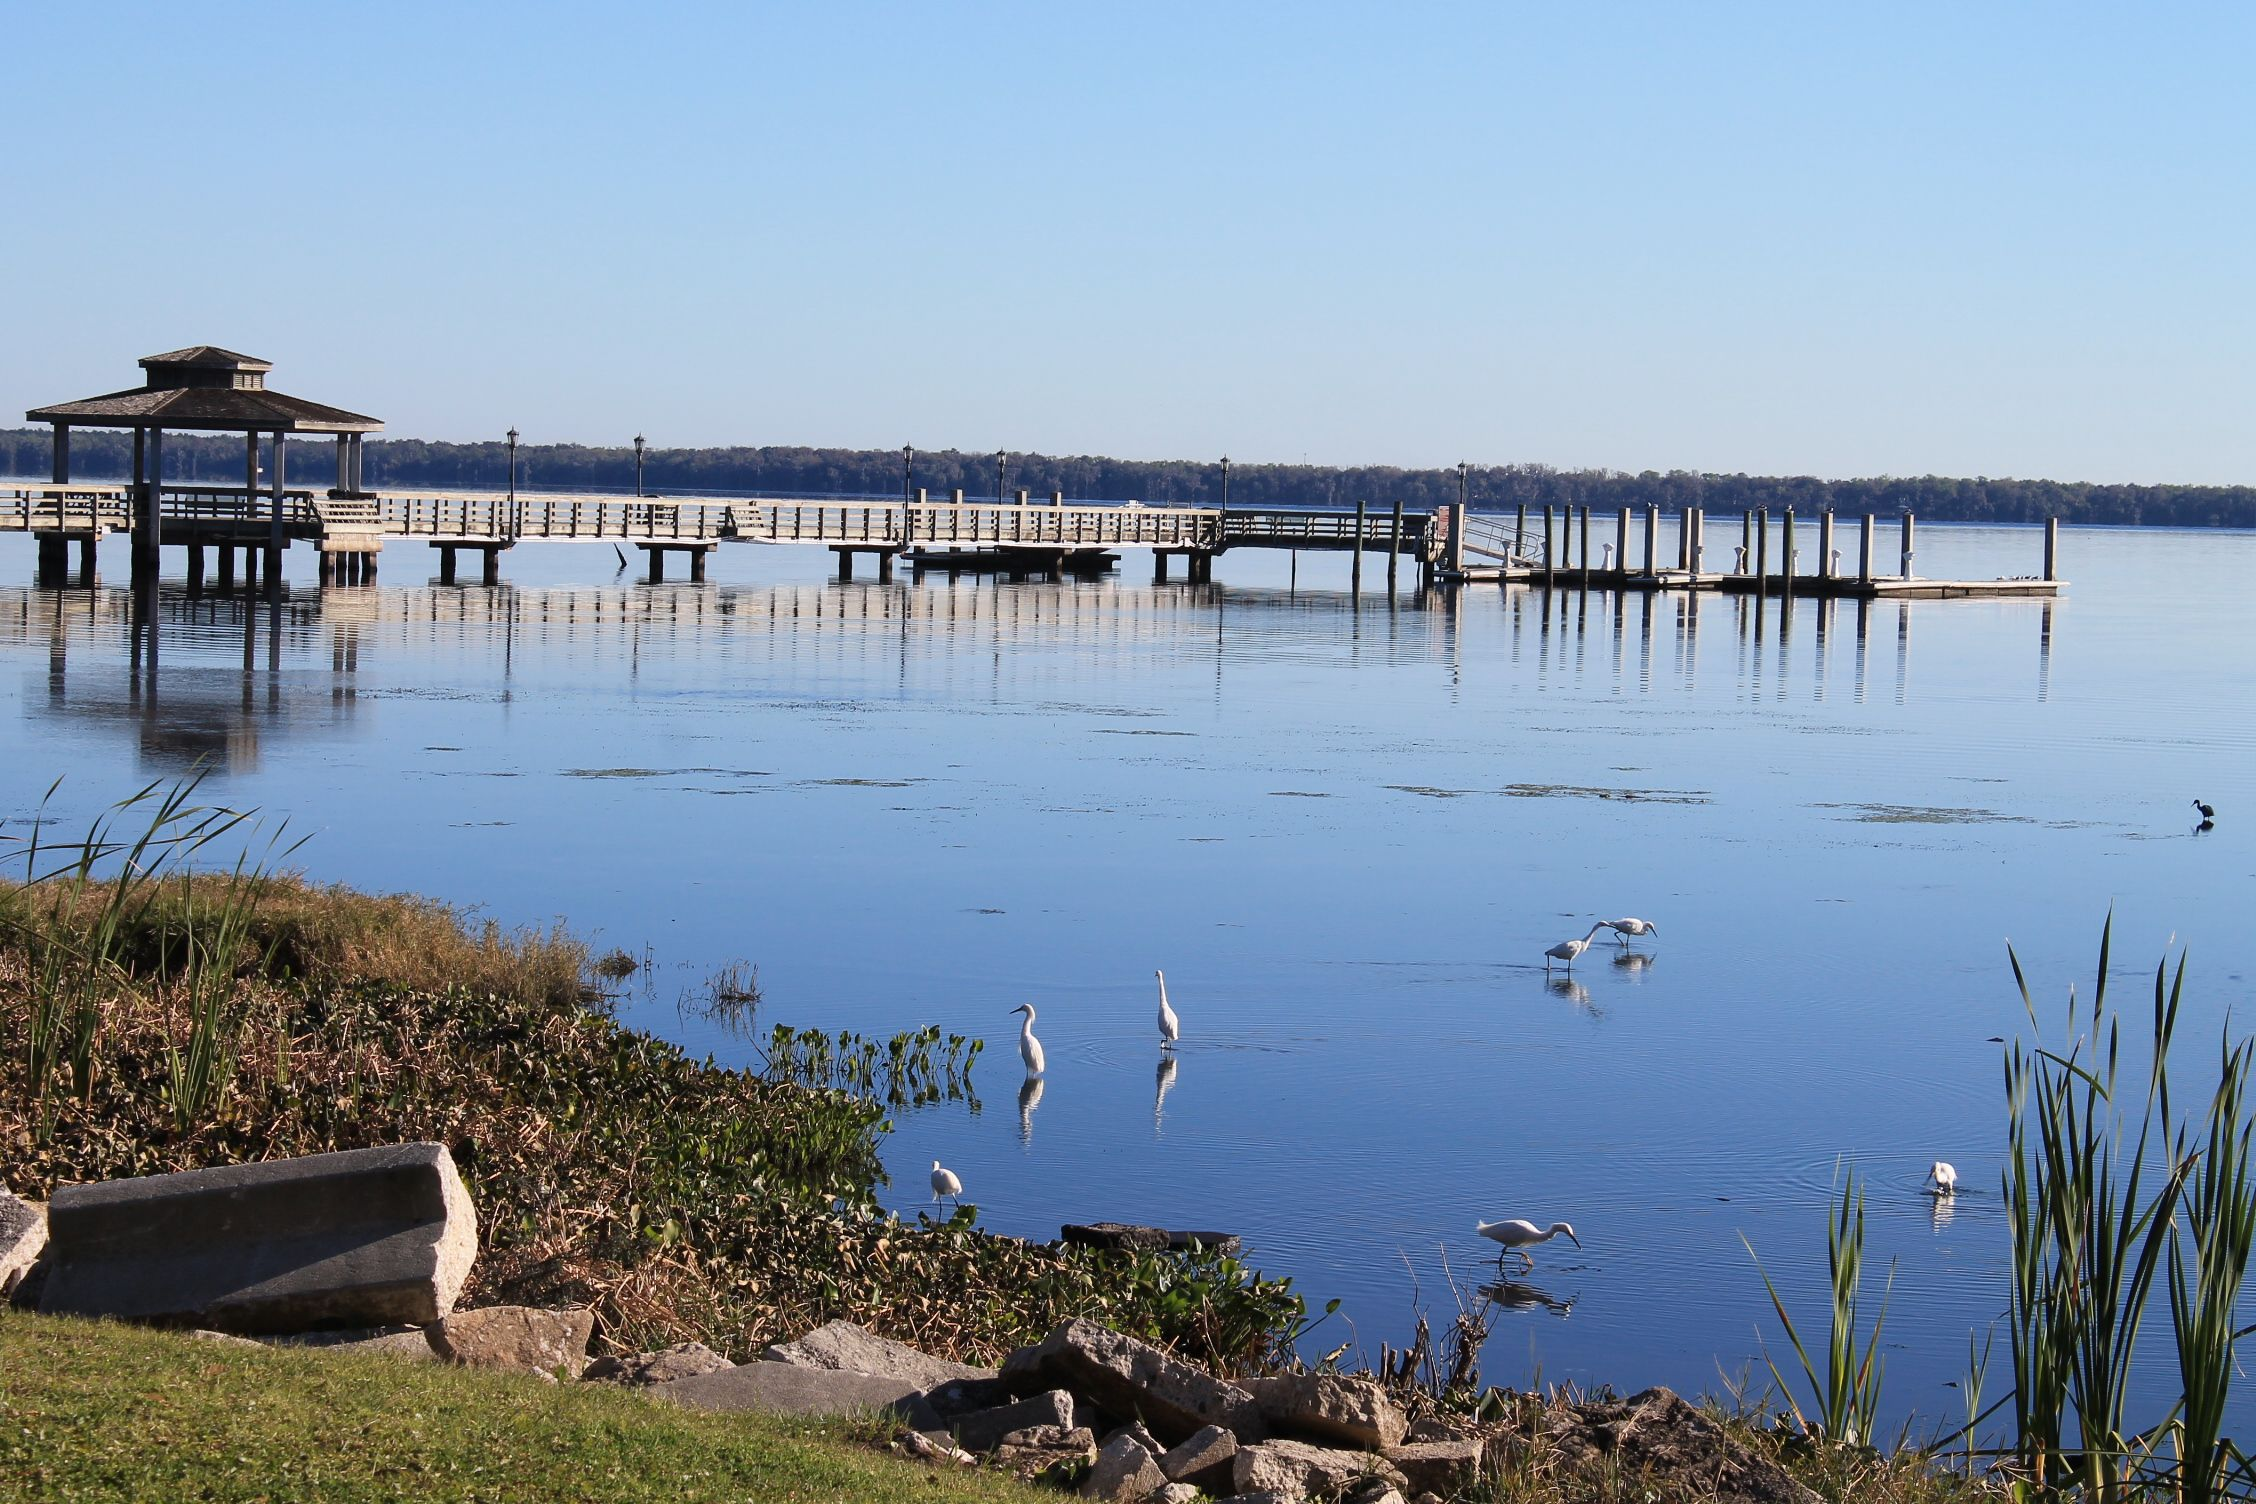 The City Pier Green cove springs, Outdoor, Cove